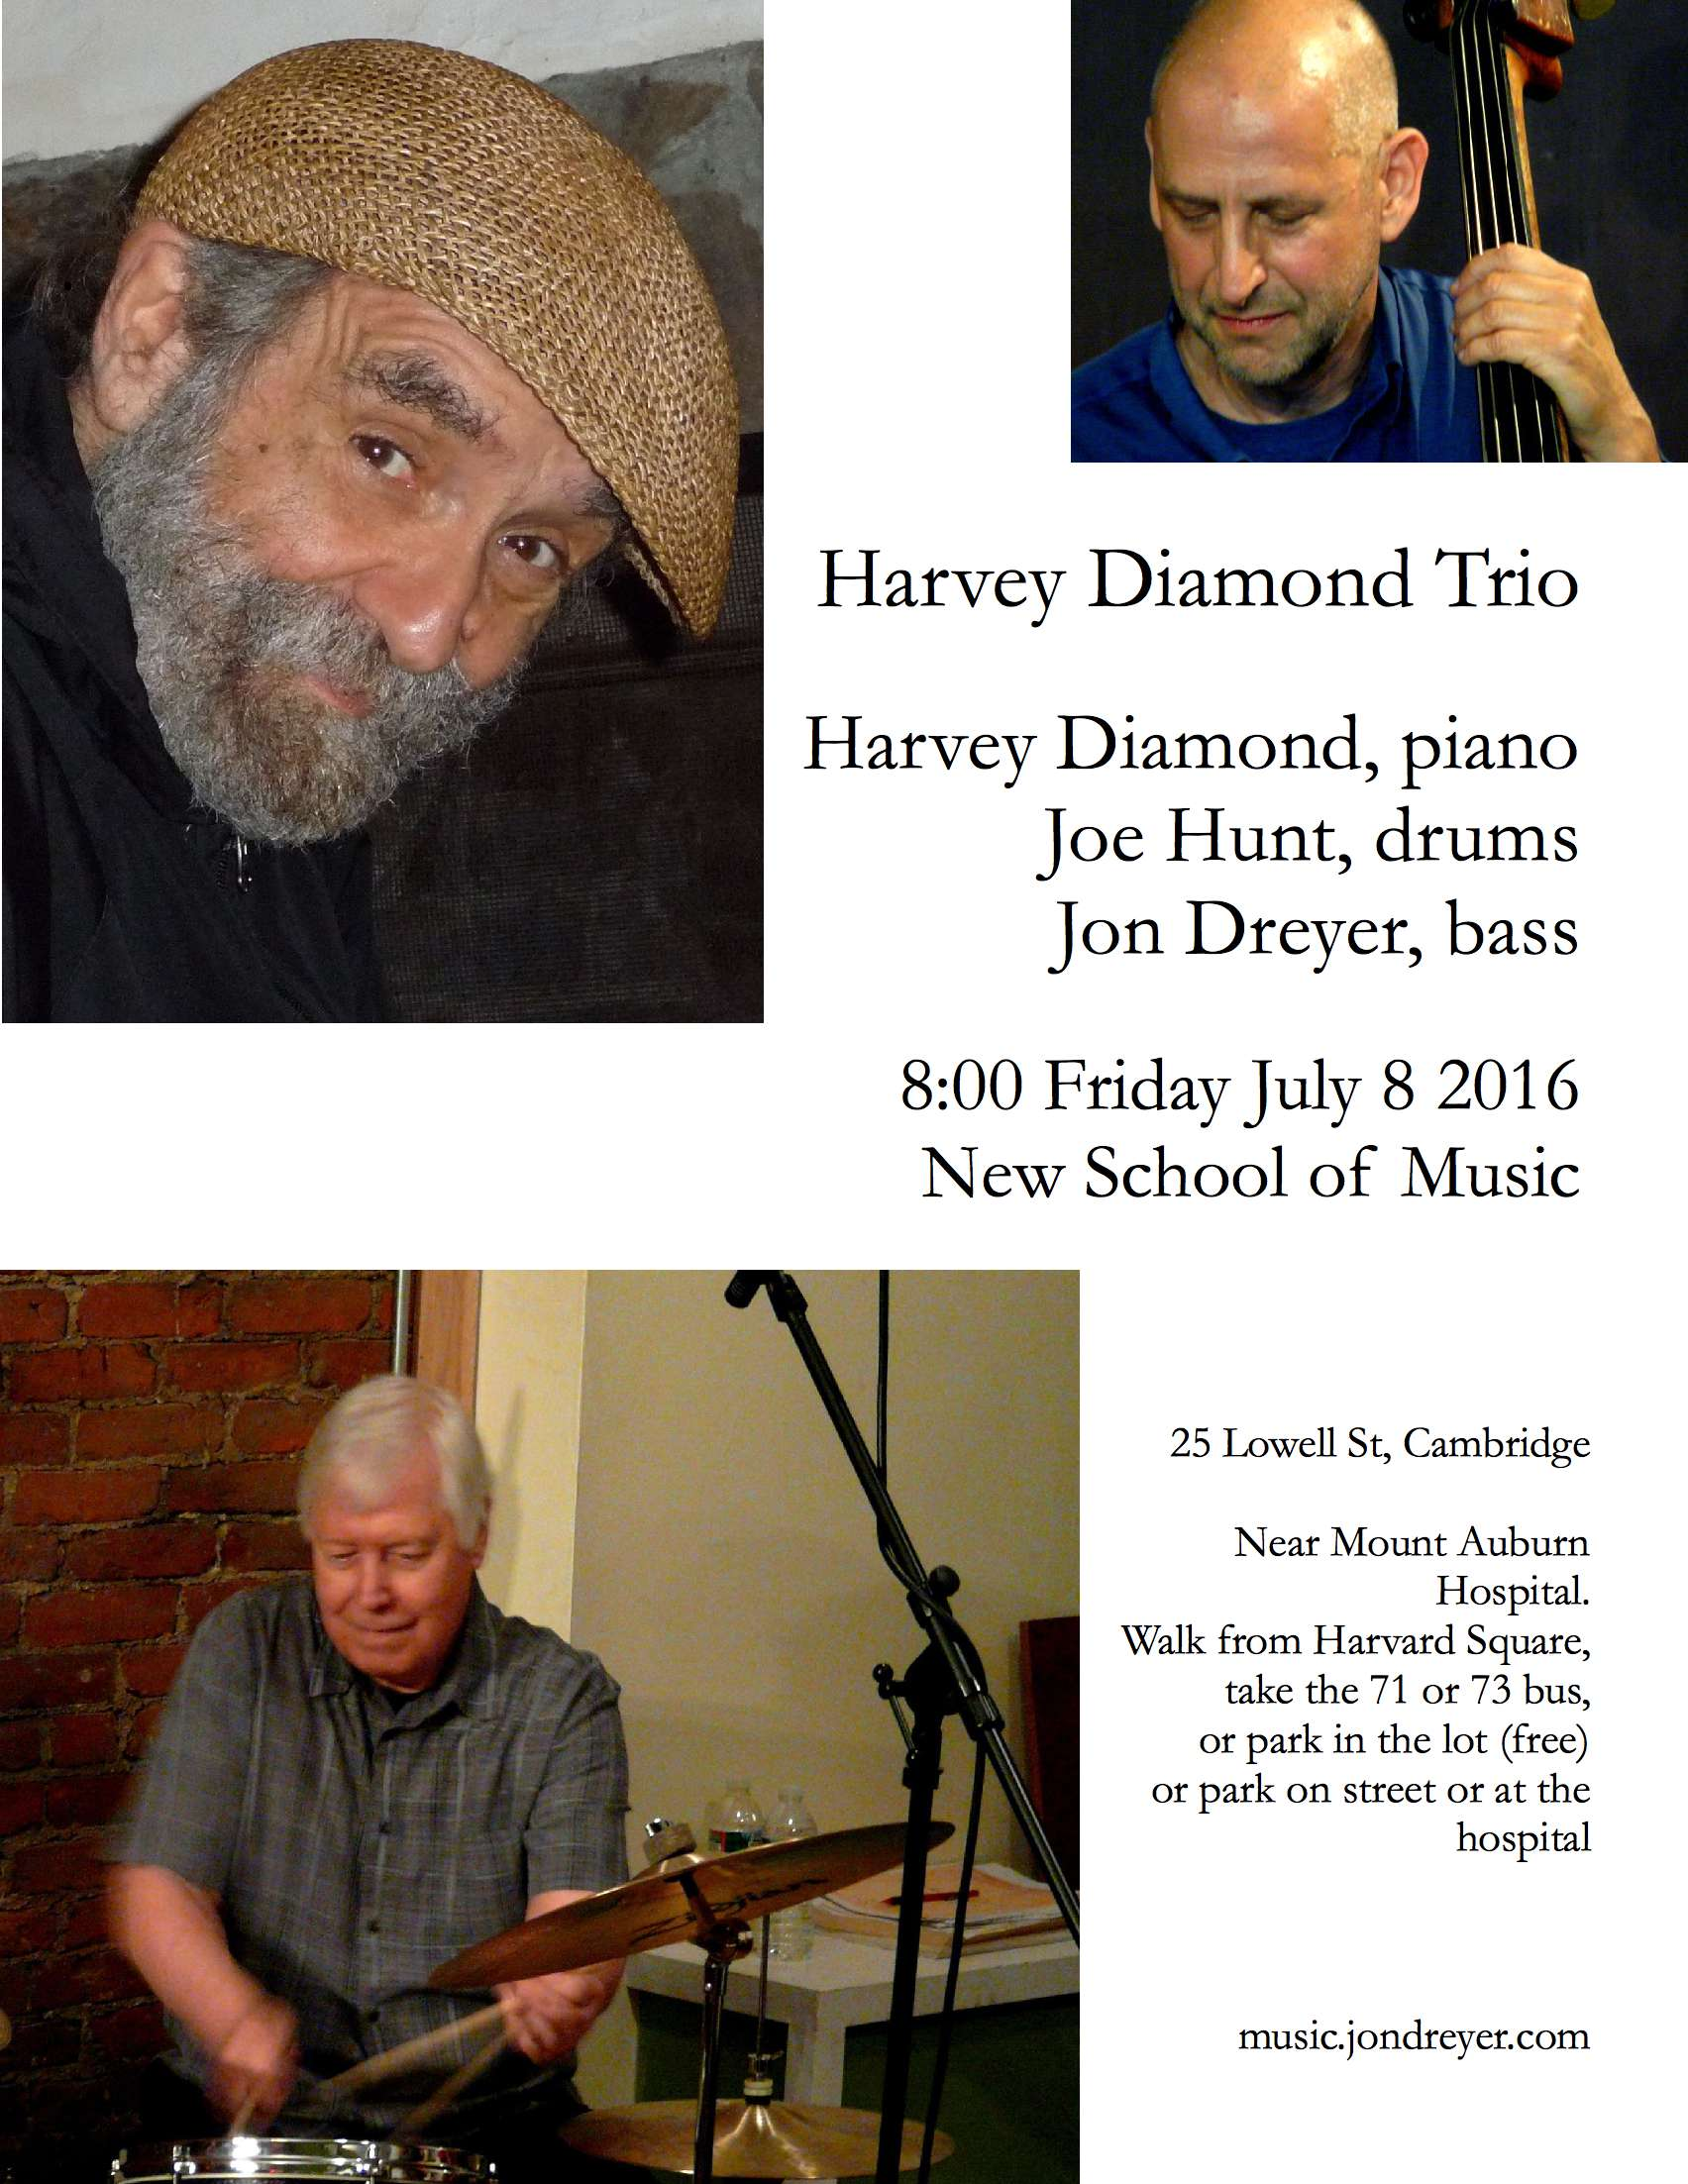 Harvey Diamond Trio Poster, July 8 2016